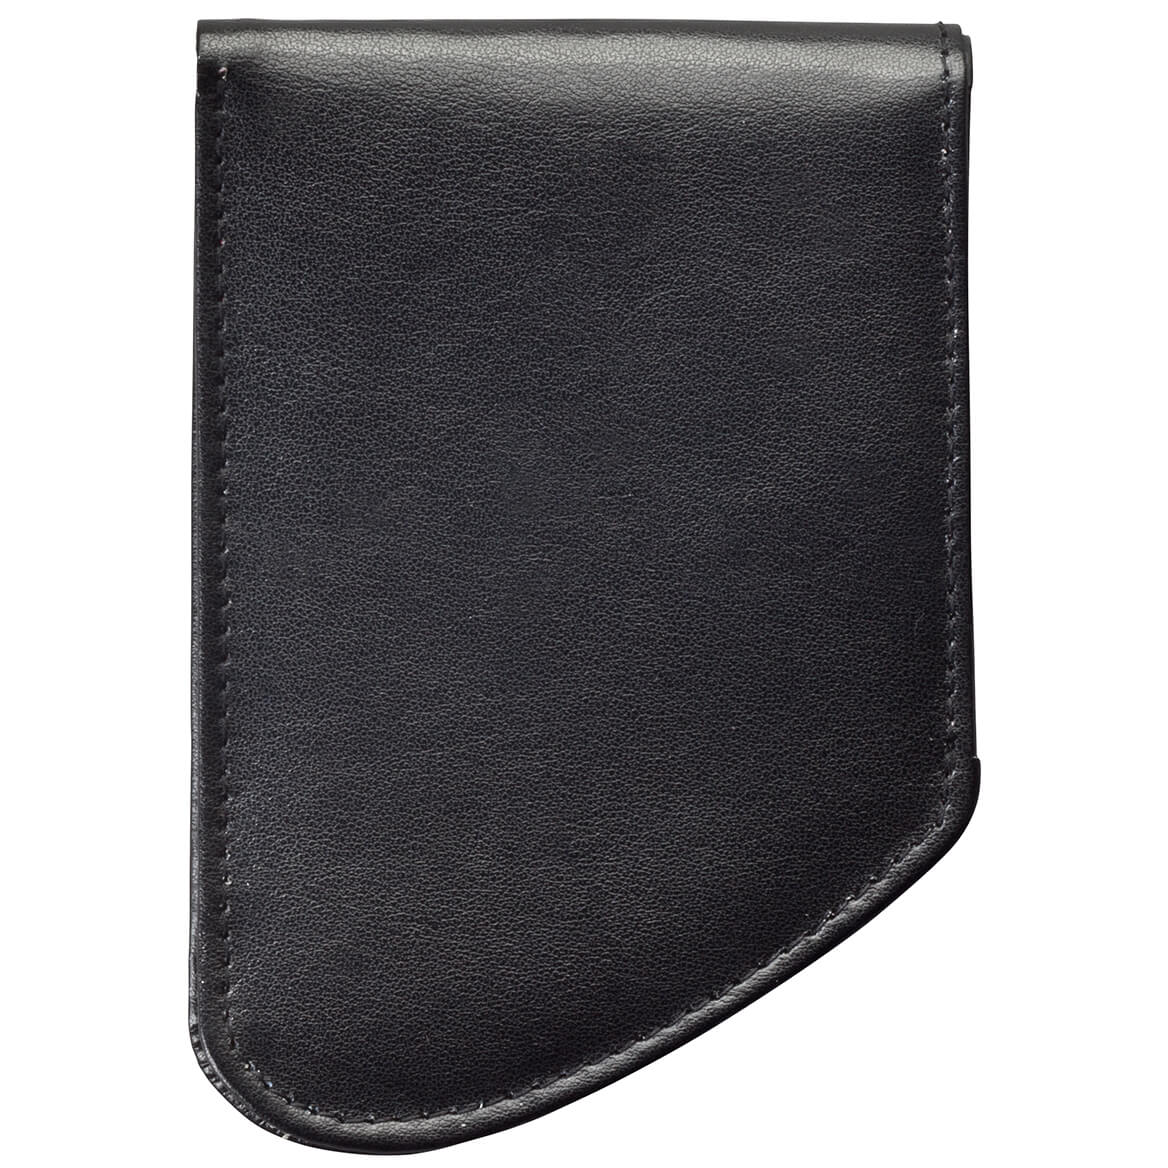 Leather RFID Front Pocket Wallet